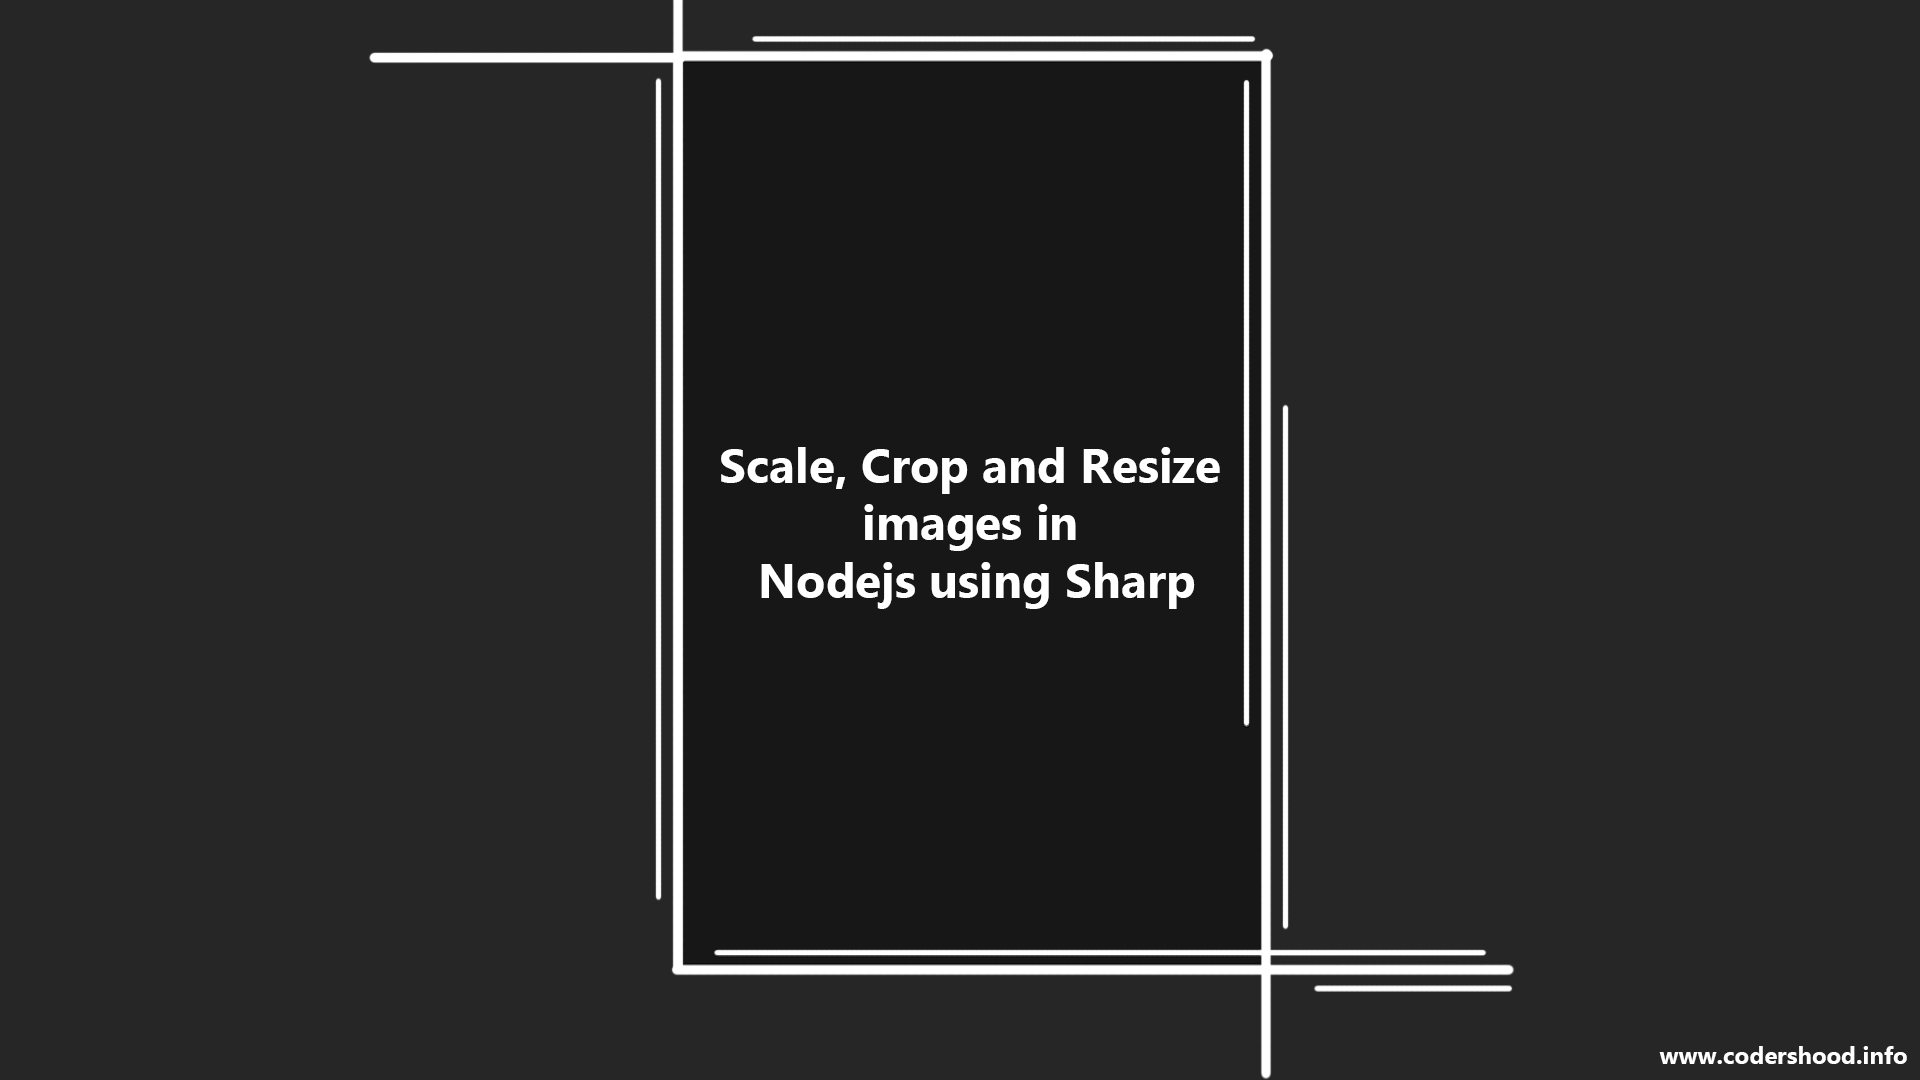 Scale, Crop and Resize images in Nodejs using Sharp - CodersHood